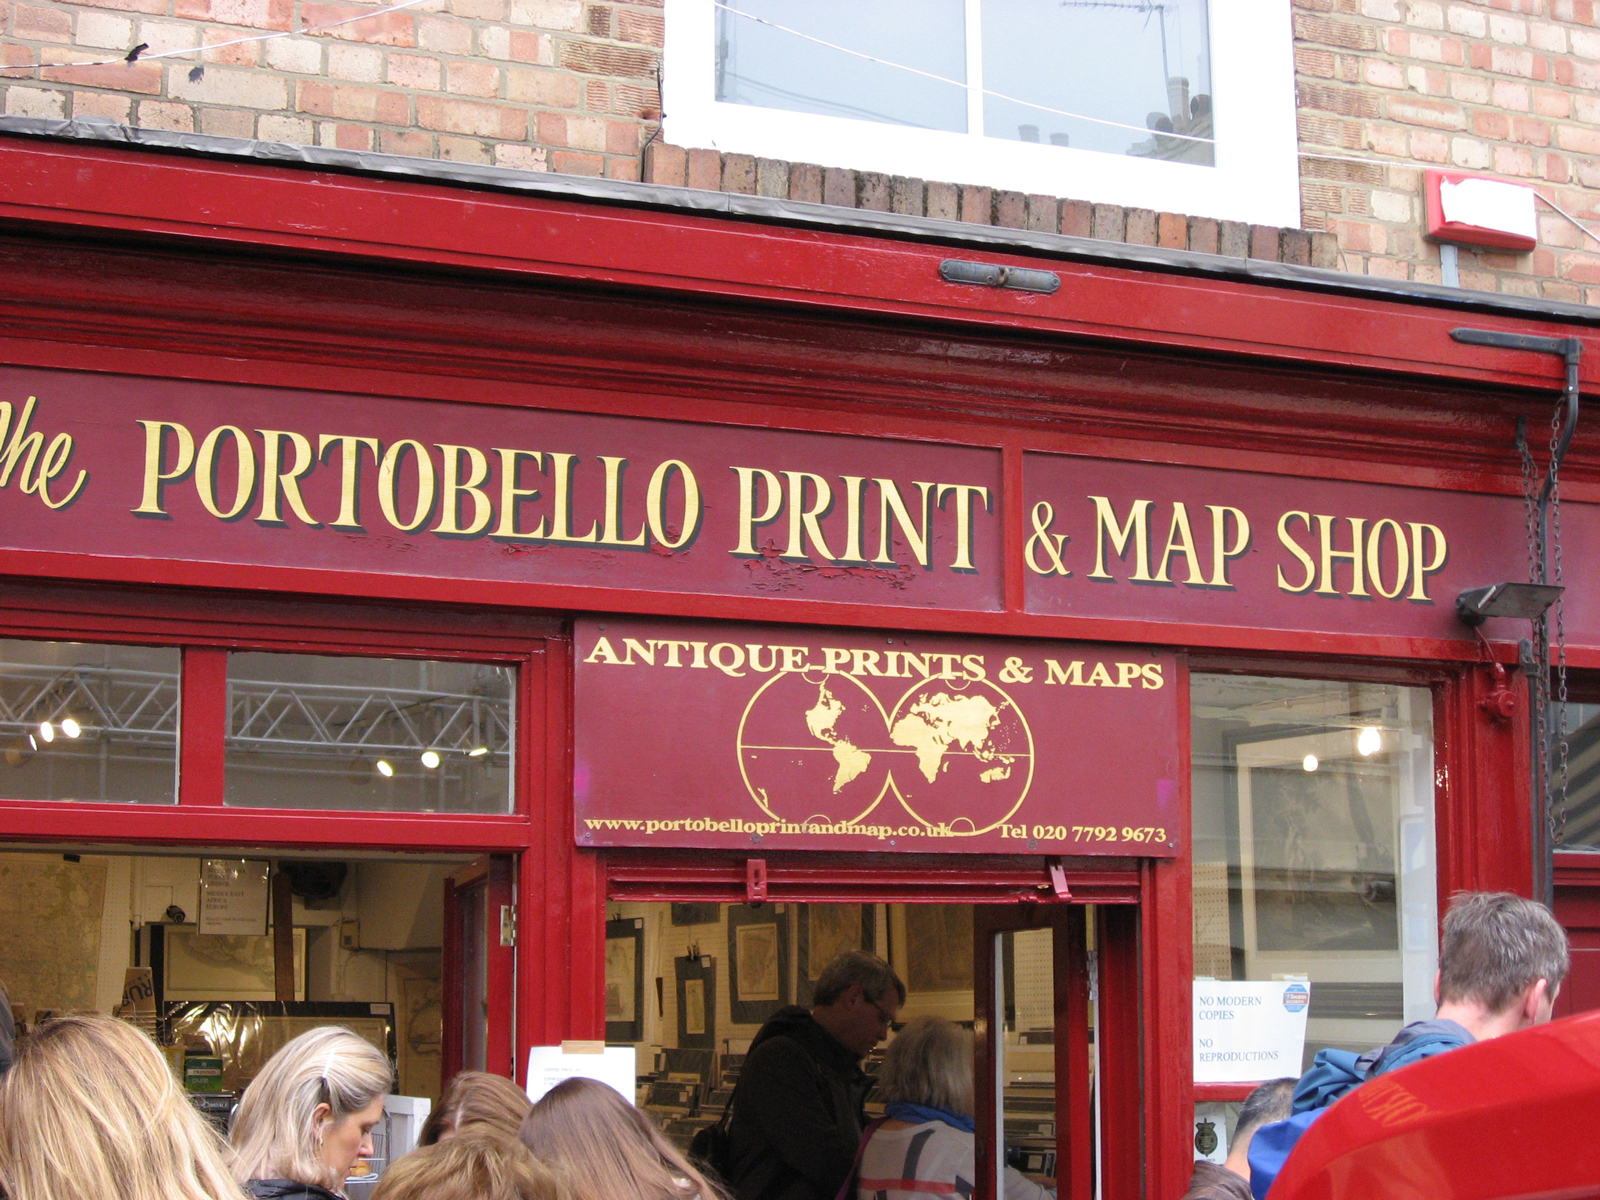 The Portobello Print & Map Shop